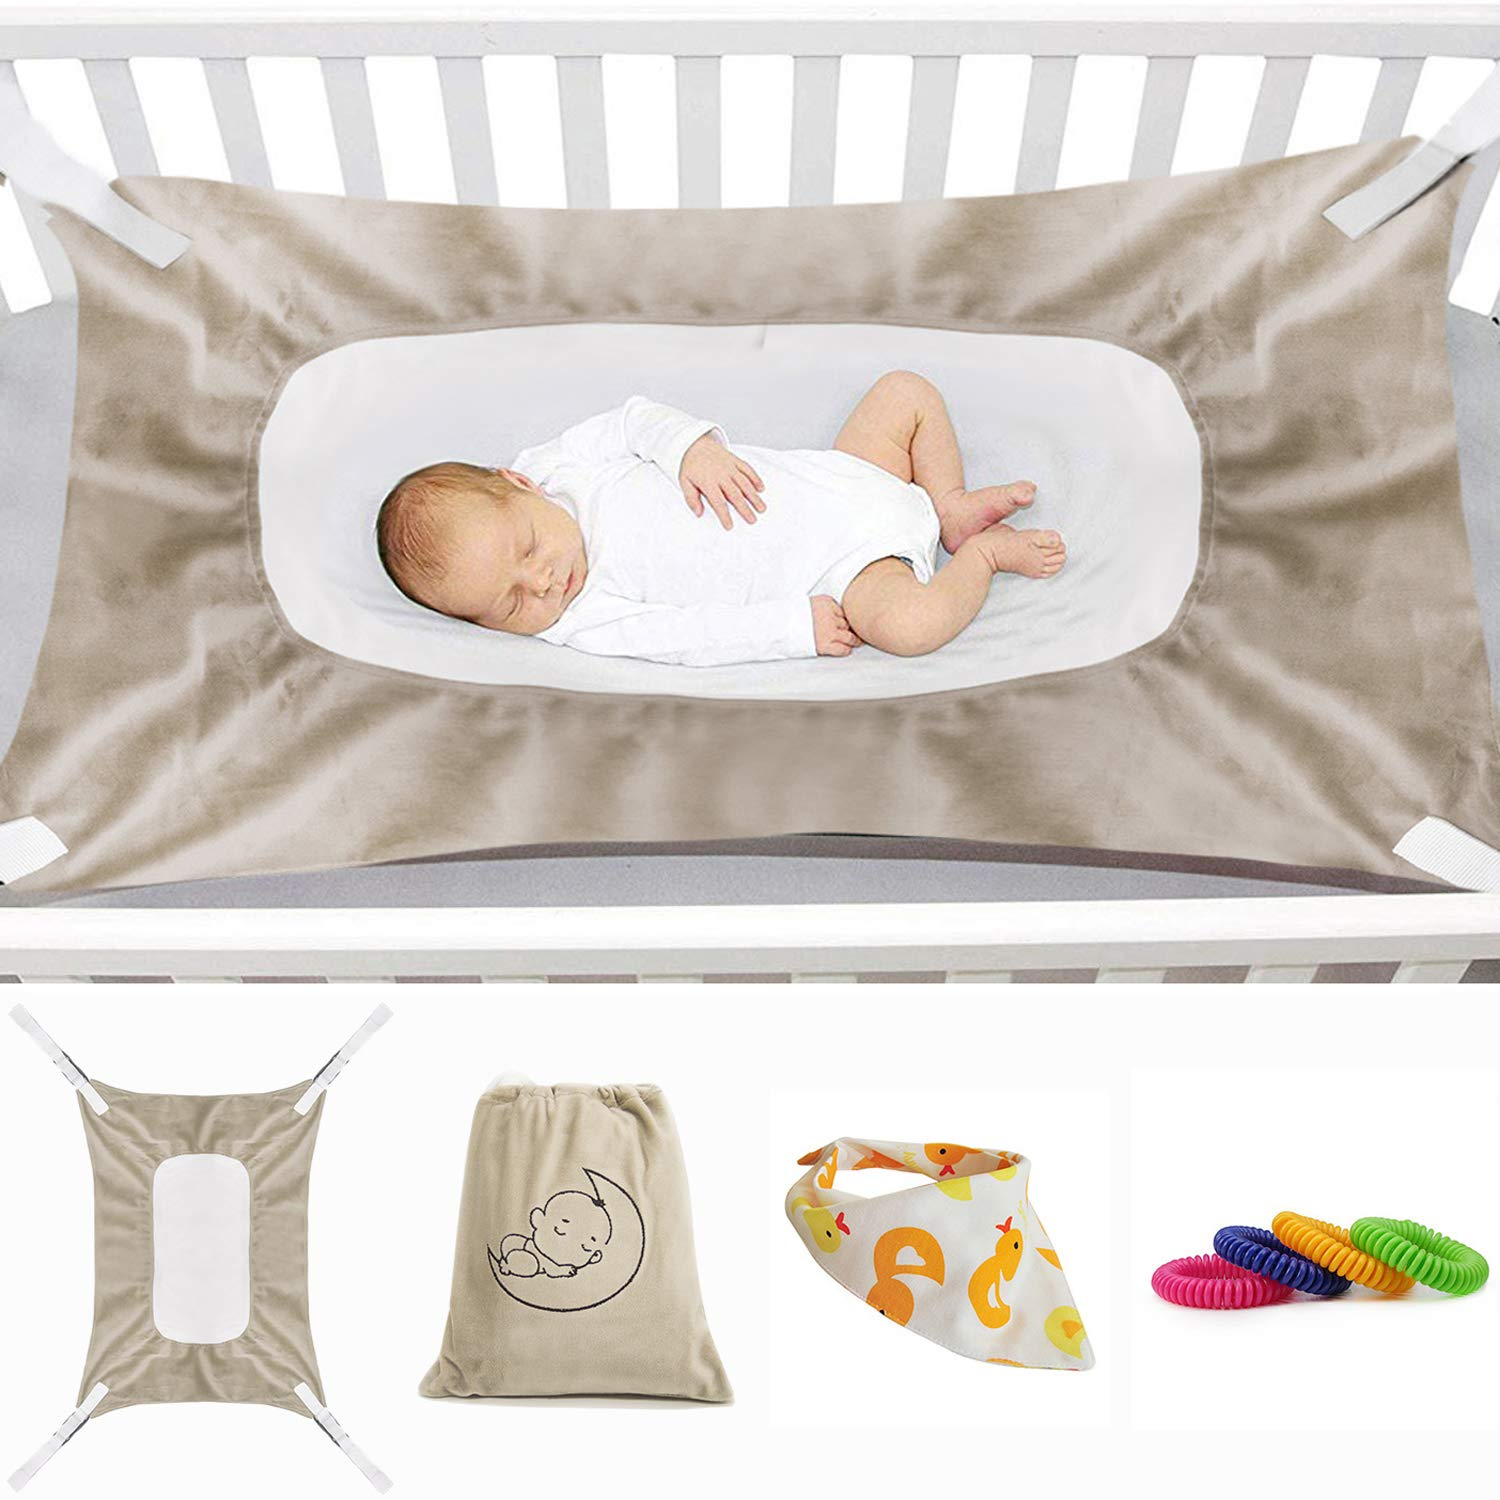 Baby Hammock for Crib New Upgrade, Mimics Womb Soft and Comfortable Material with Strong Adjustable Straps Newborn Hammock (Light Brown) by Jsbeuith (Image #1)